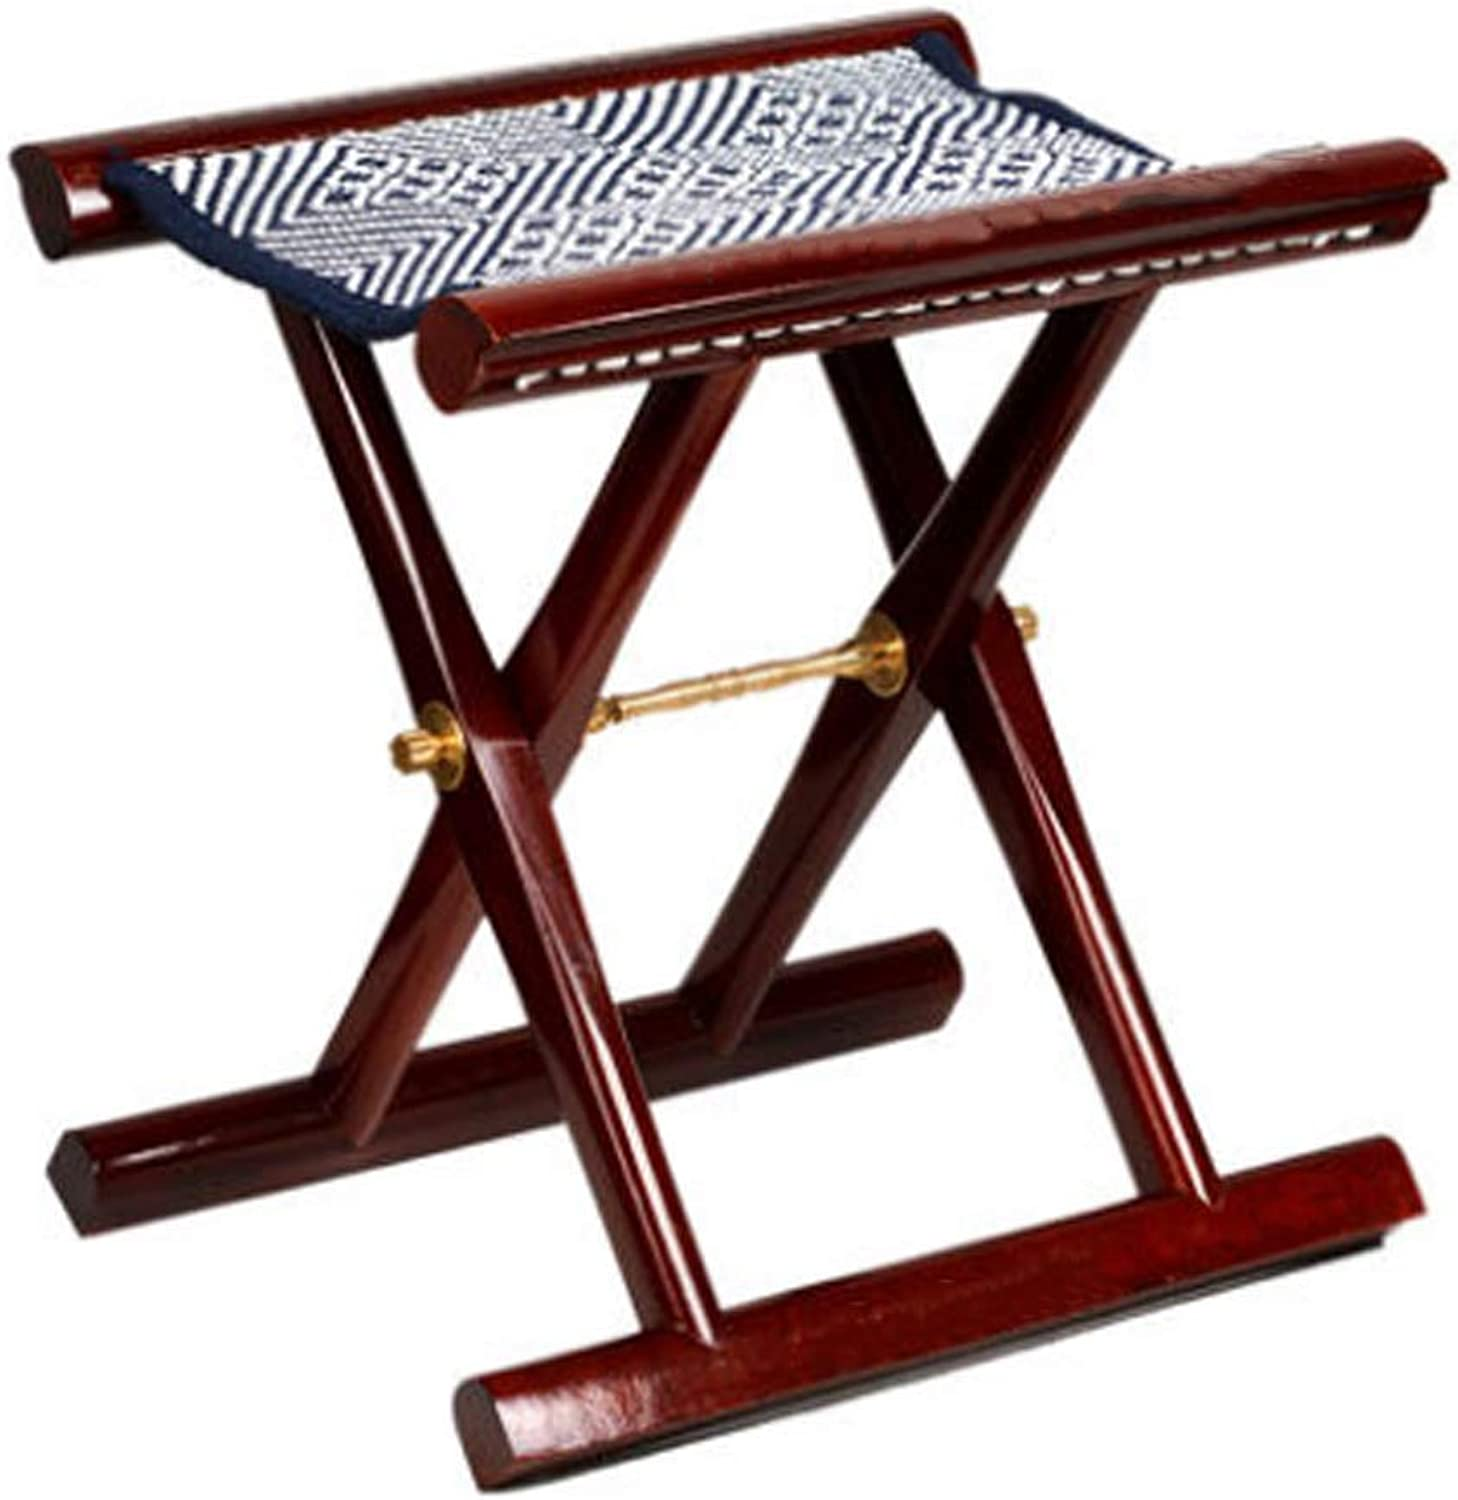 Outdoor Products Portable Folding Chairs Folding Stool, Pure Wood, Easy to Carry and Light Beach Chair